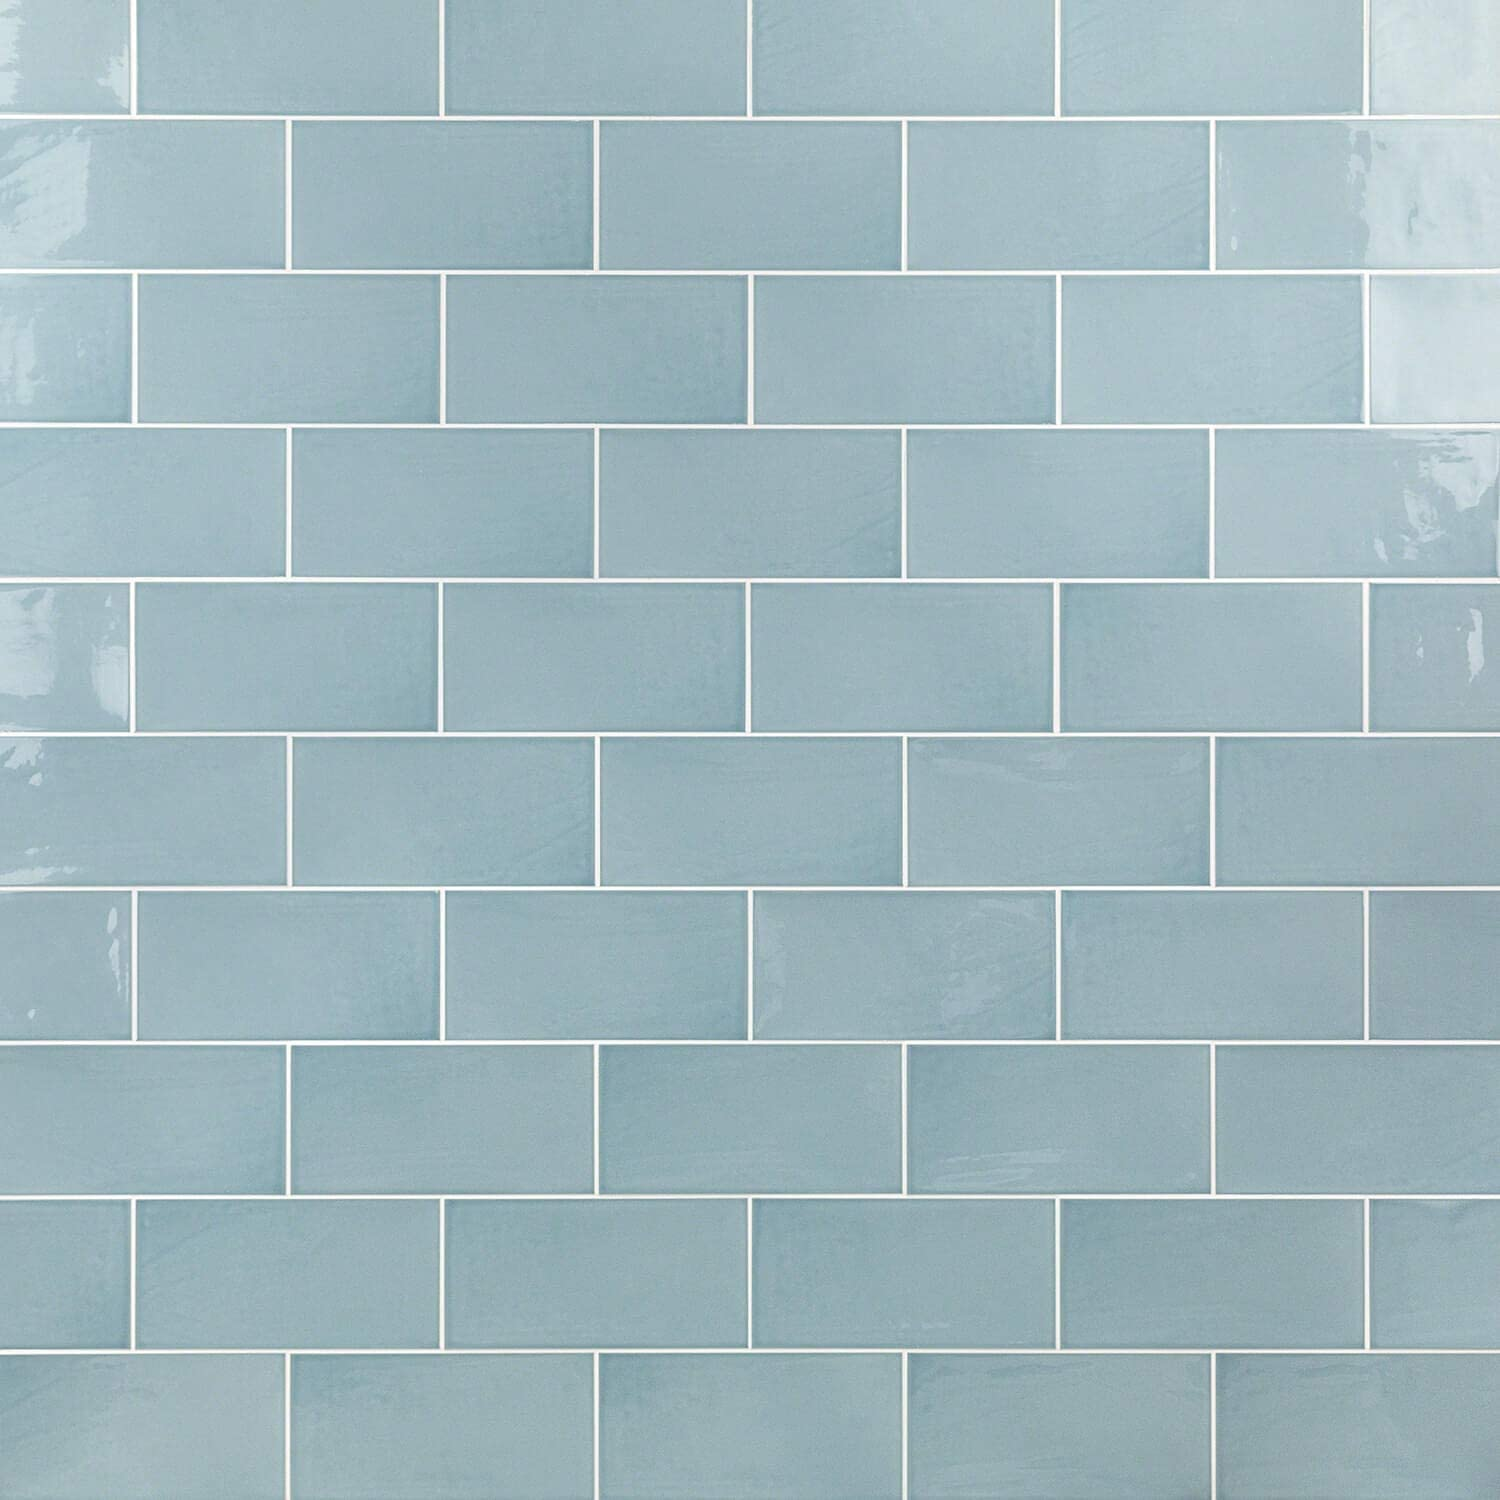 "Barbados Light Blue 8"" x 8"" Polished Ceramic Subway Wall Tile (8"